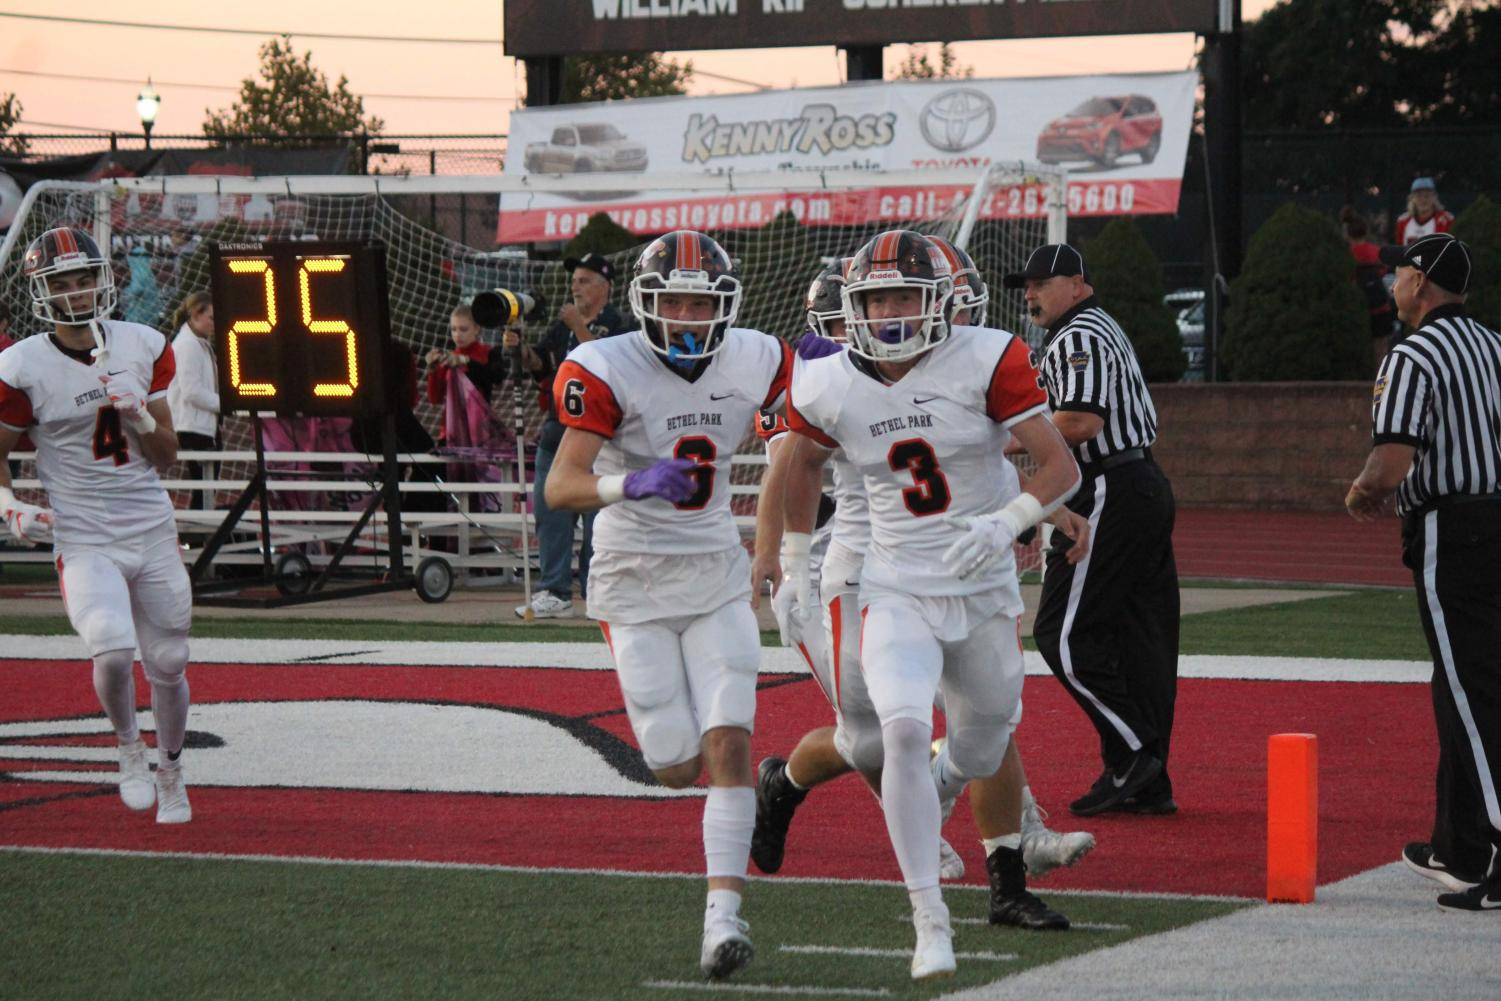 FIRED UP,  Sean McGowan leads the celebratory run after his 32-yard touchdown run during the Hawks game against Moon on September 28.